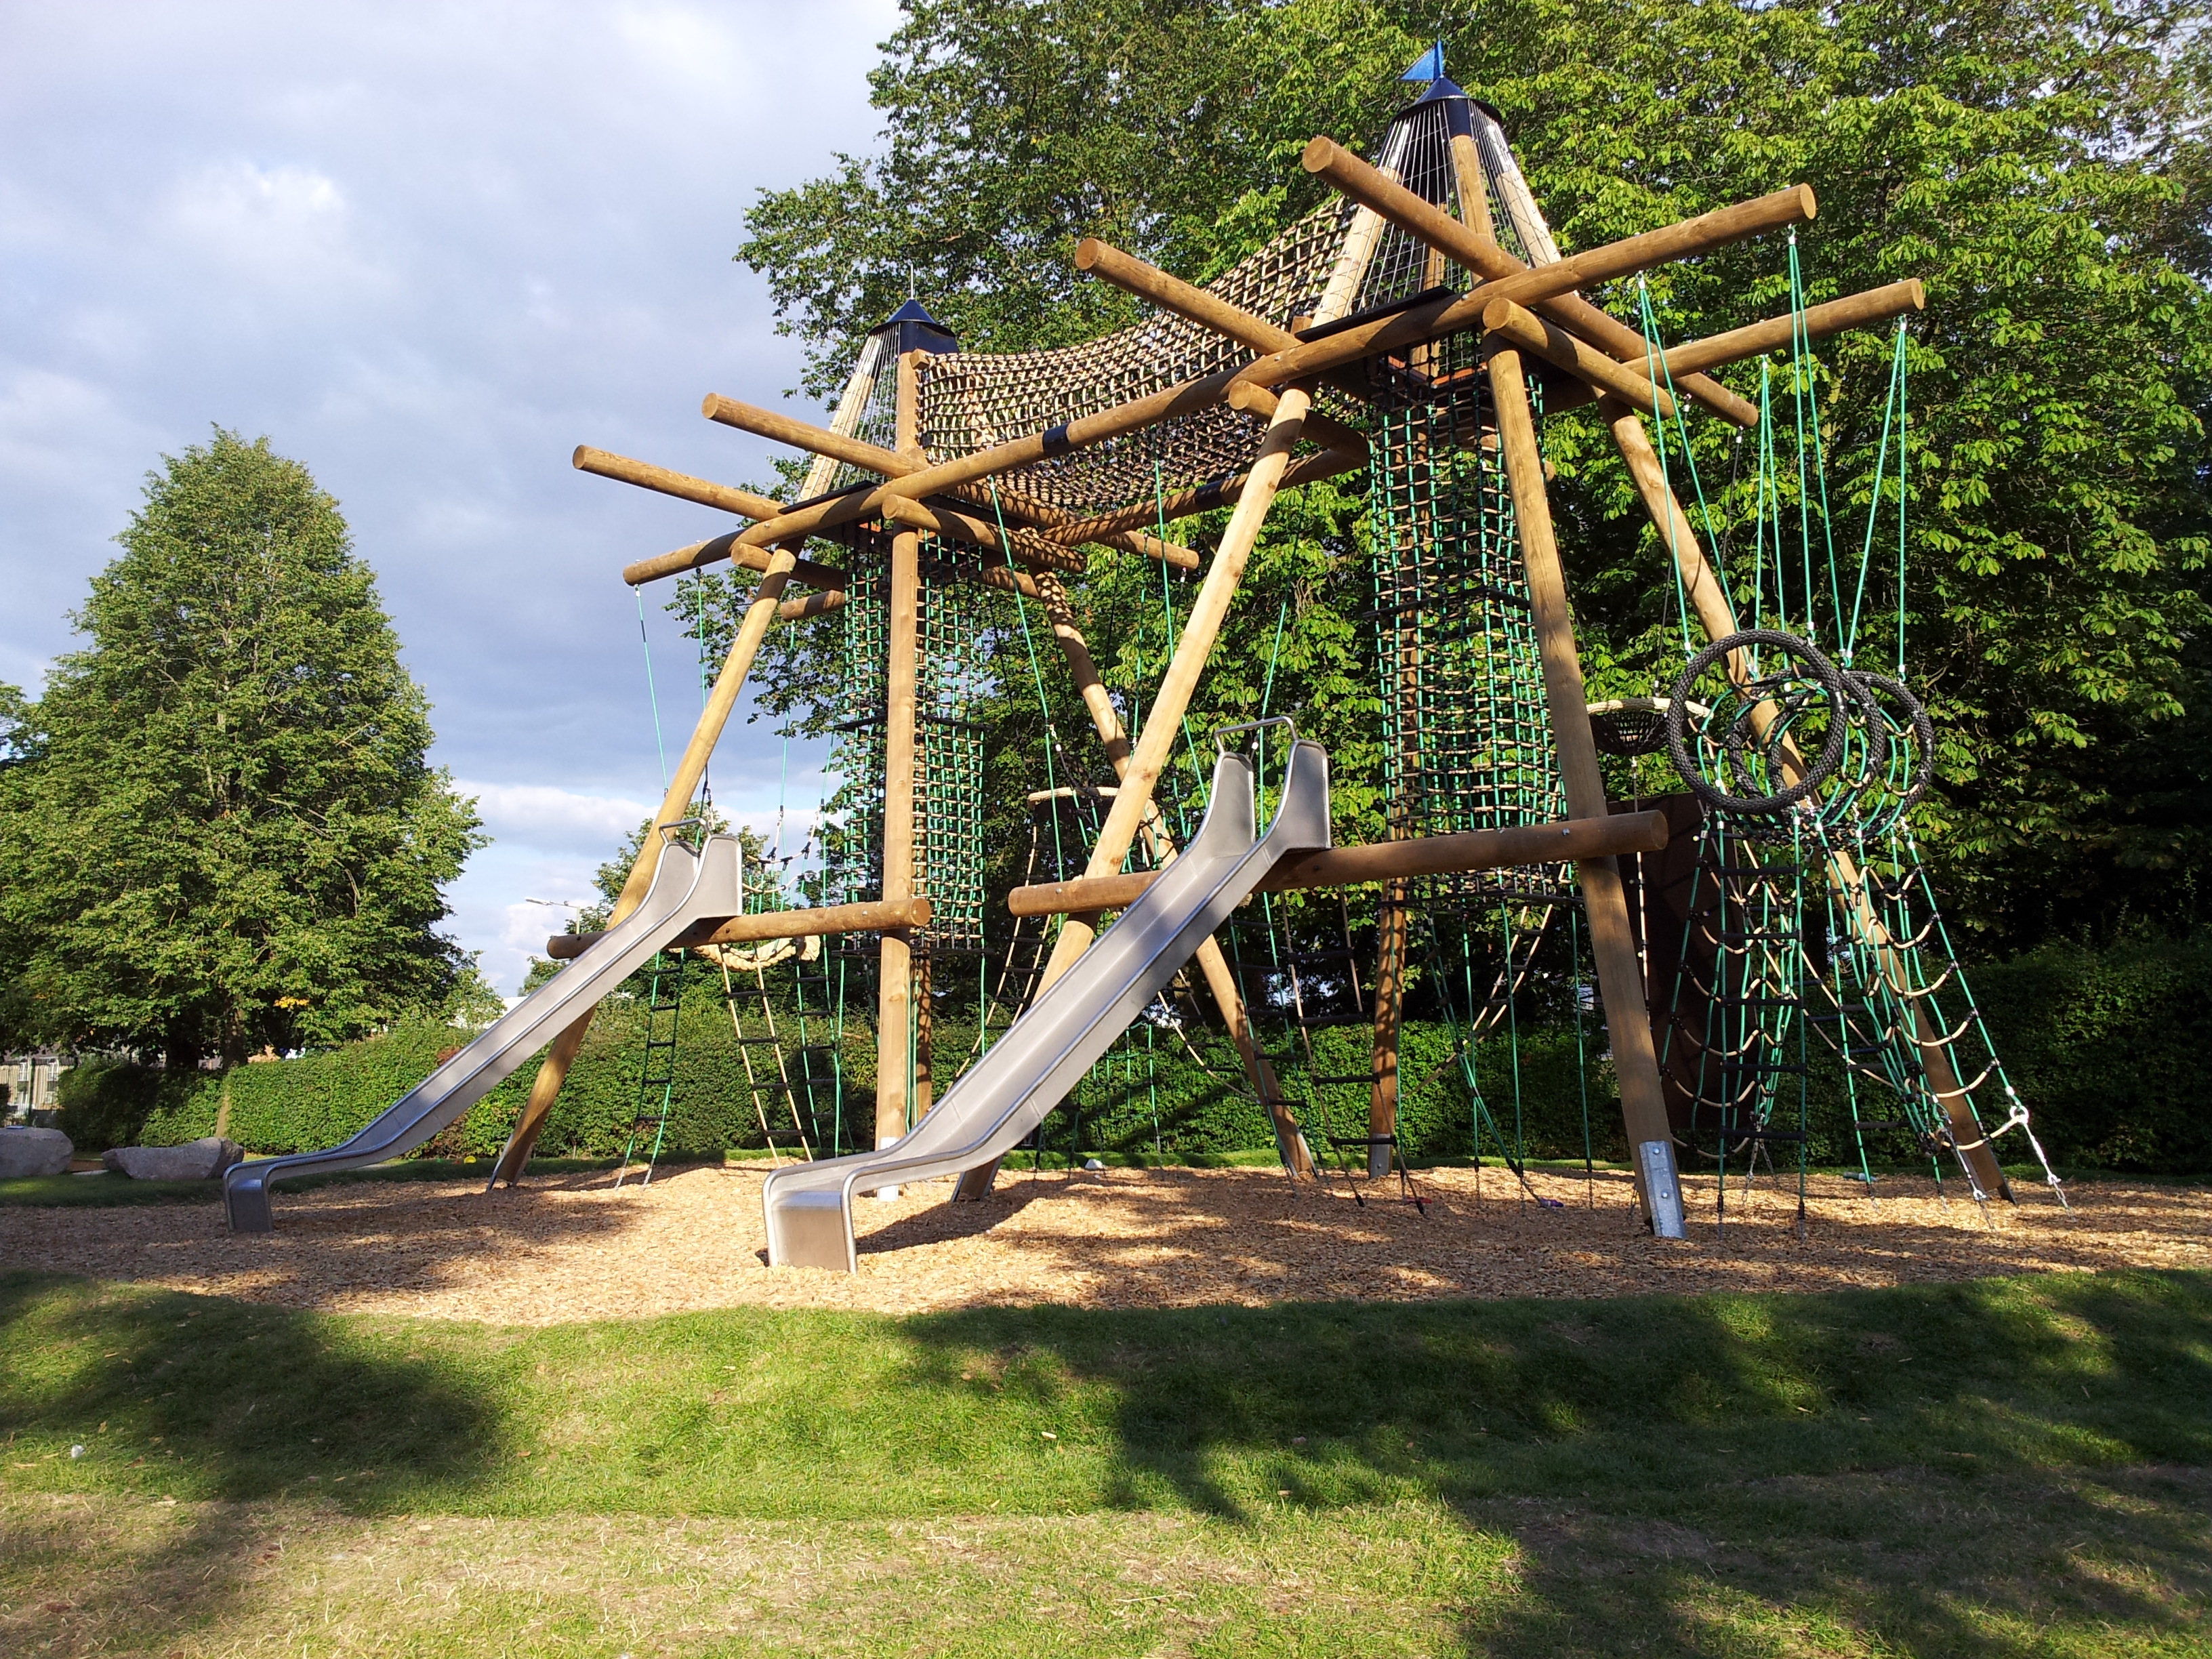 The massive and majestic Witney Towers climbing frame